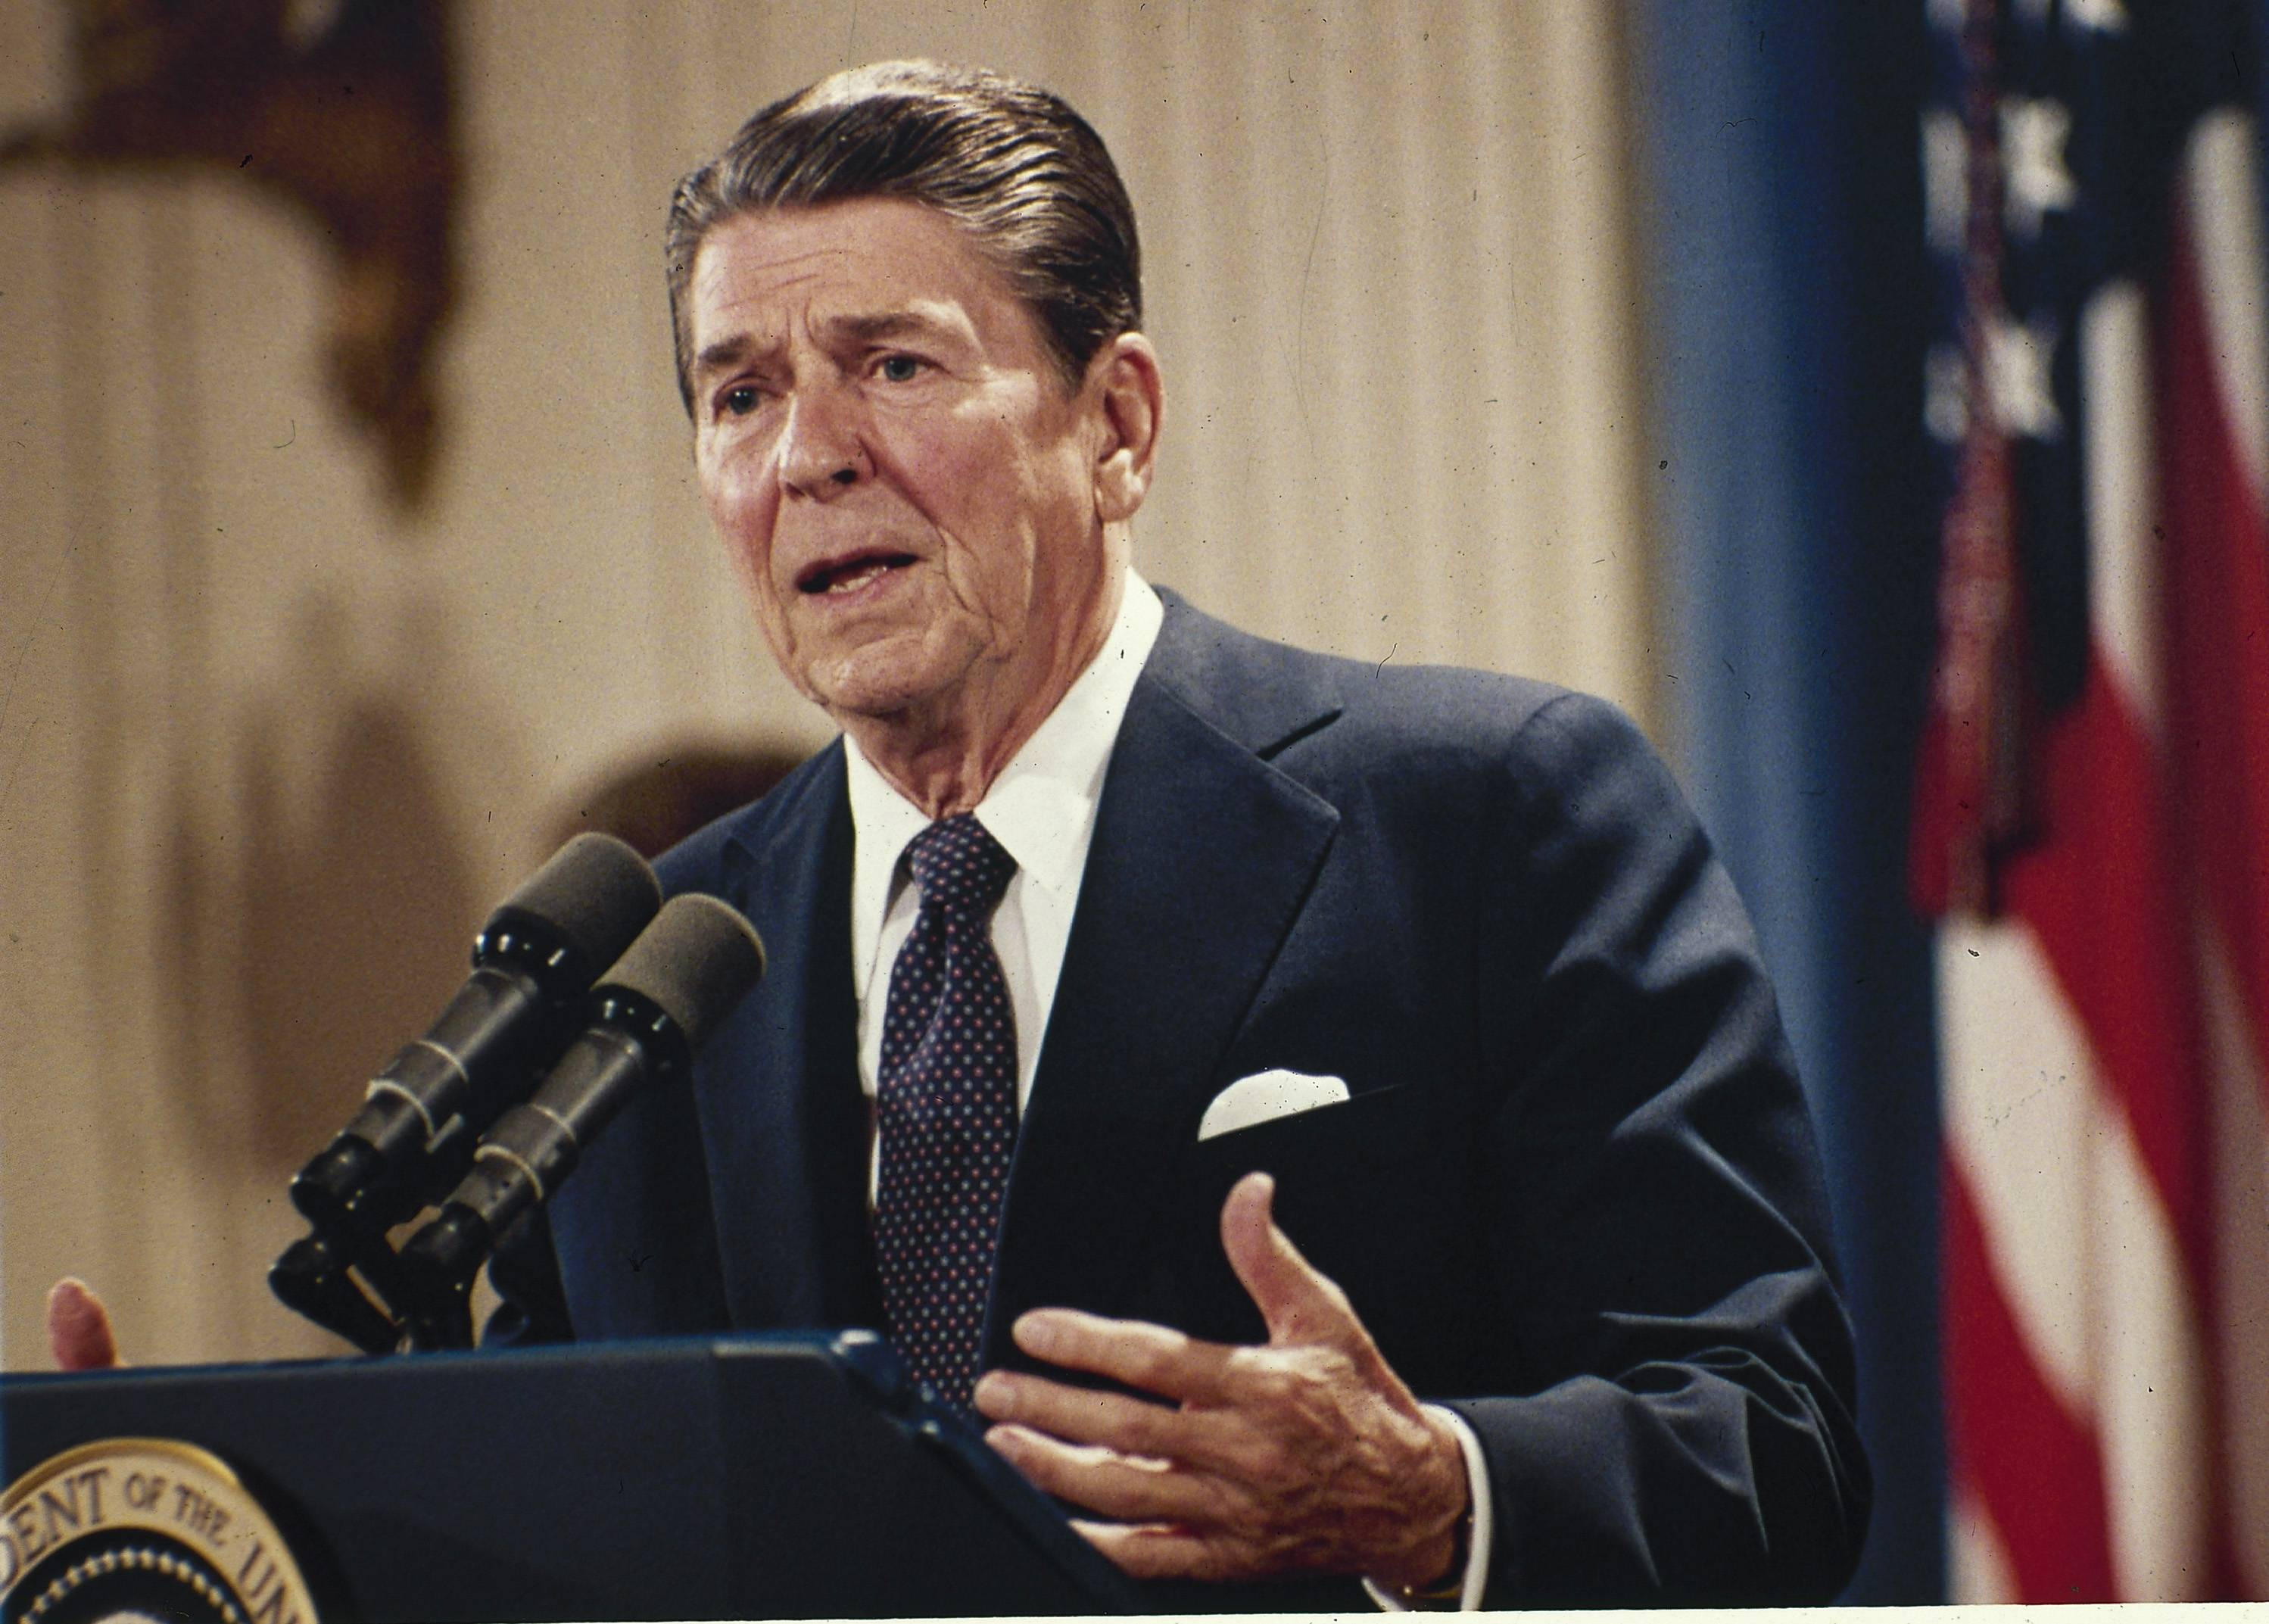 Ronald Reagan - Presidential style and leadership